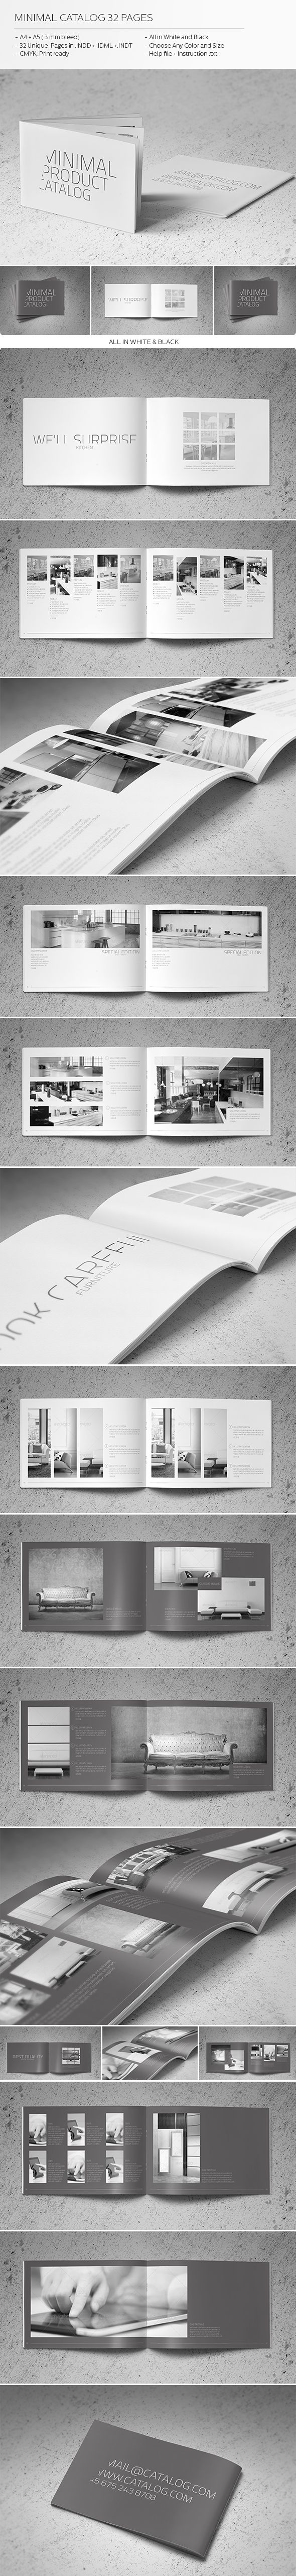 \\\ Minimal Catalog 32 Pages by Realstar, via Behance \\\